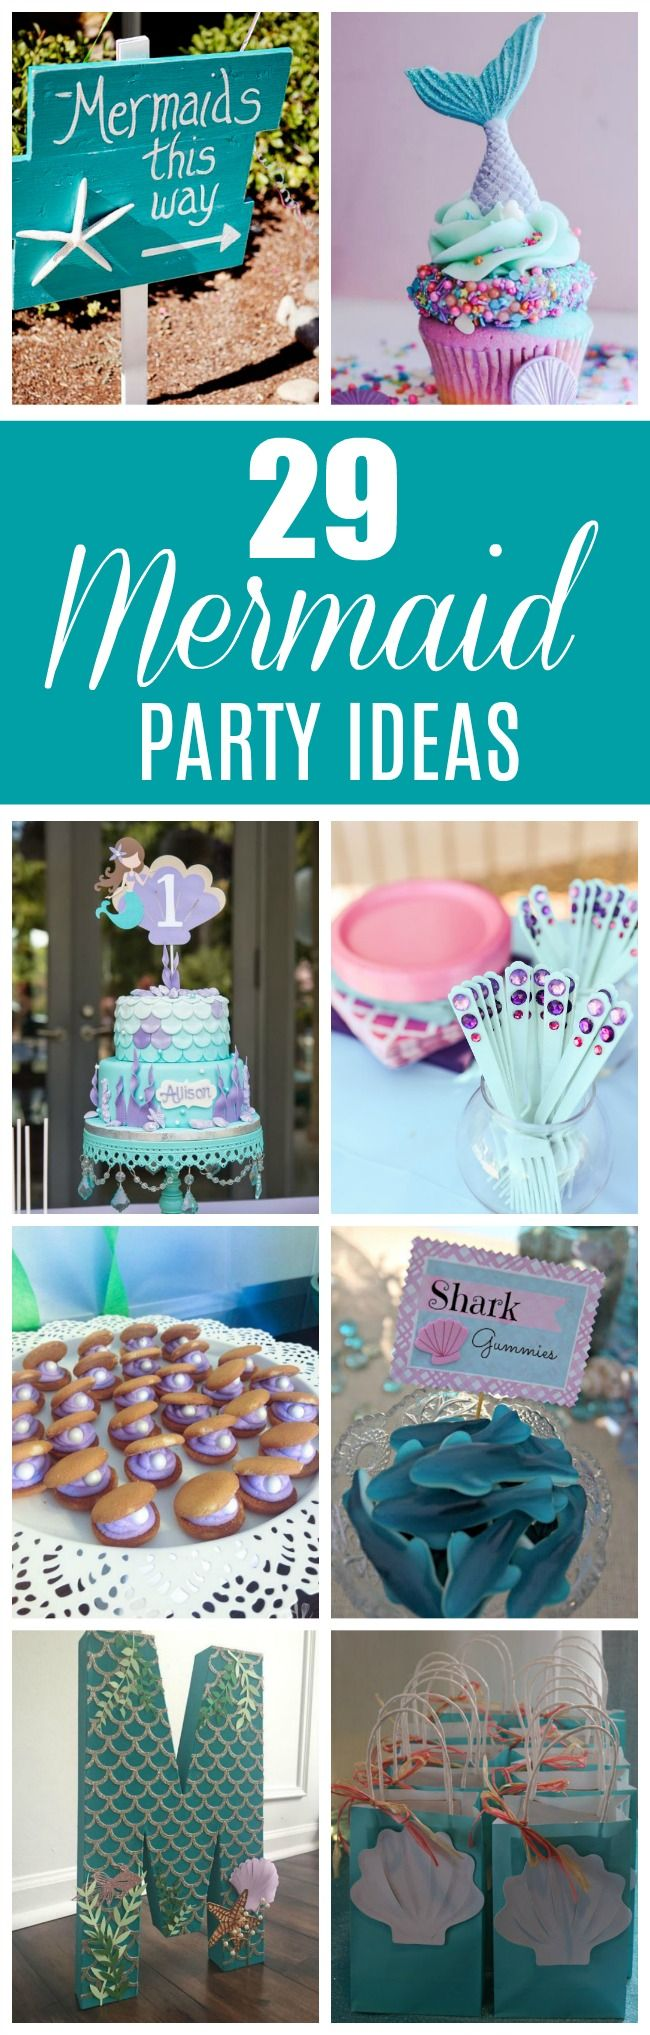 These 29 Magical Mermaid Party Ideas will having you throwing your own fabulous mermaid themed party in no time. Get all of your mermaid party ideas here.